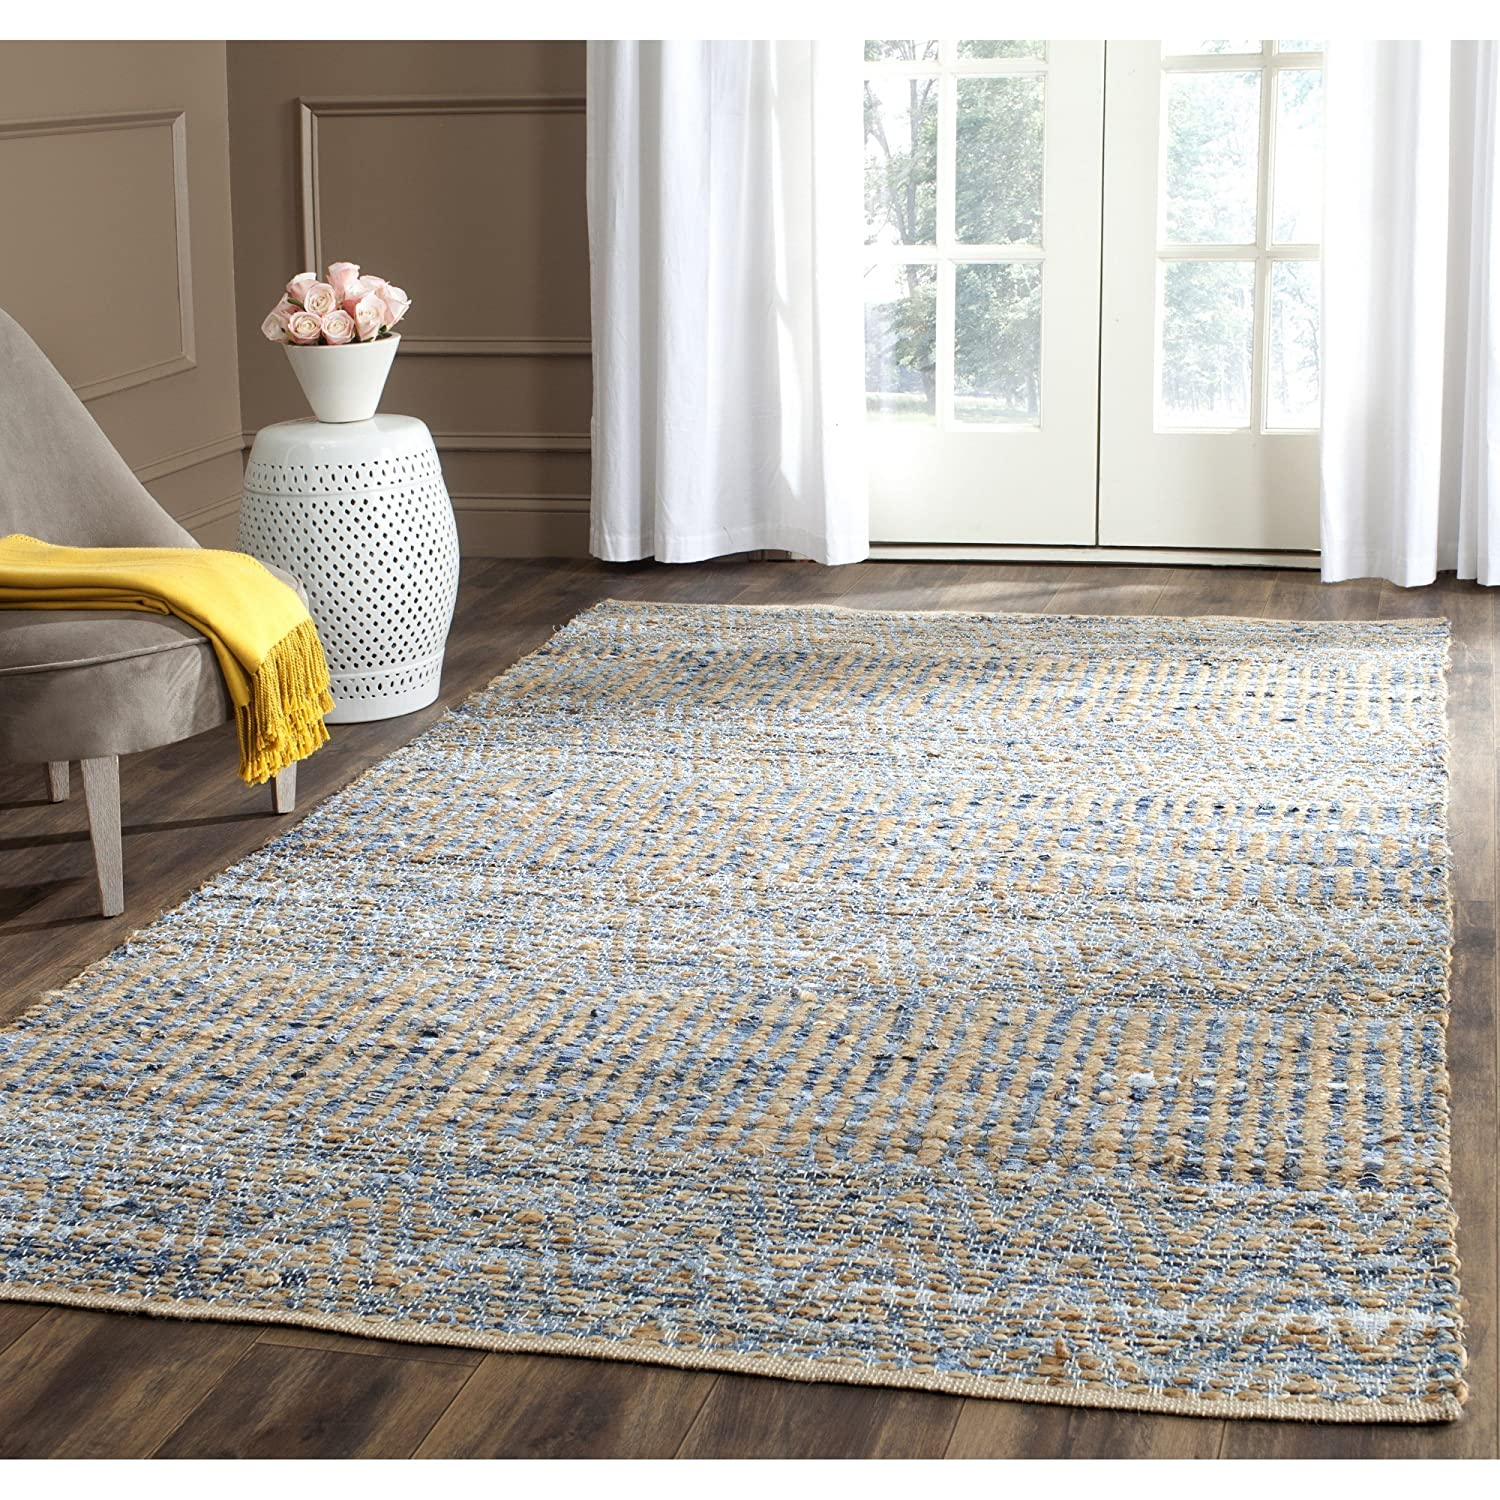 Safavieh Cape Cod Collection CAP353A Hand Woven Flatweave Natural and Blue Jute Area Rug (5' x 8')